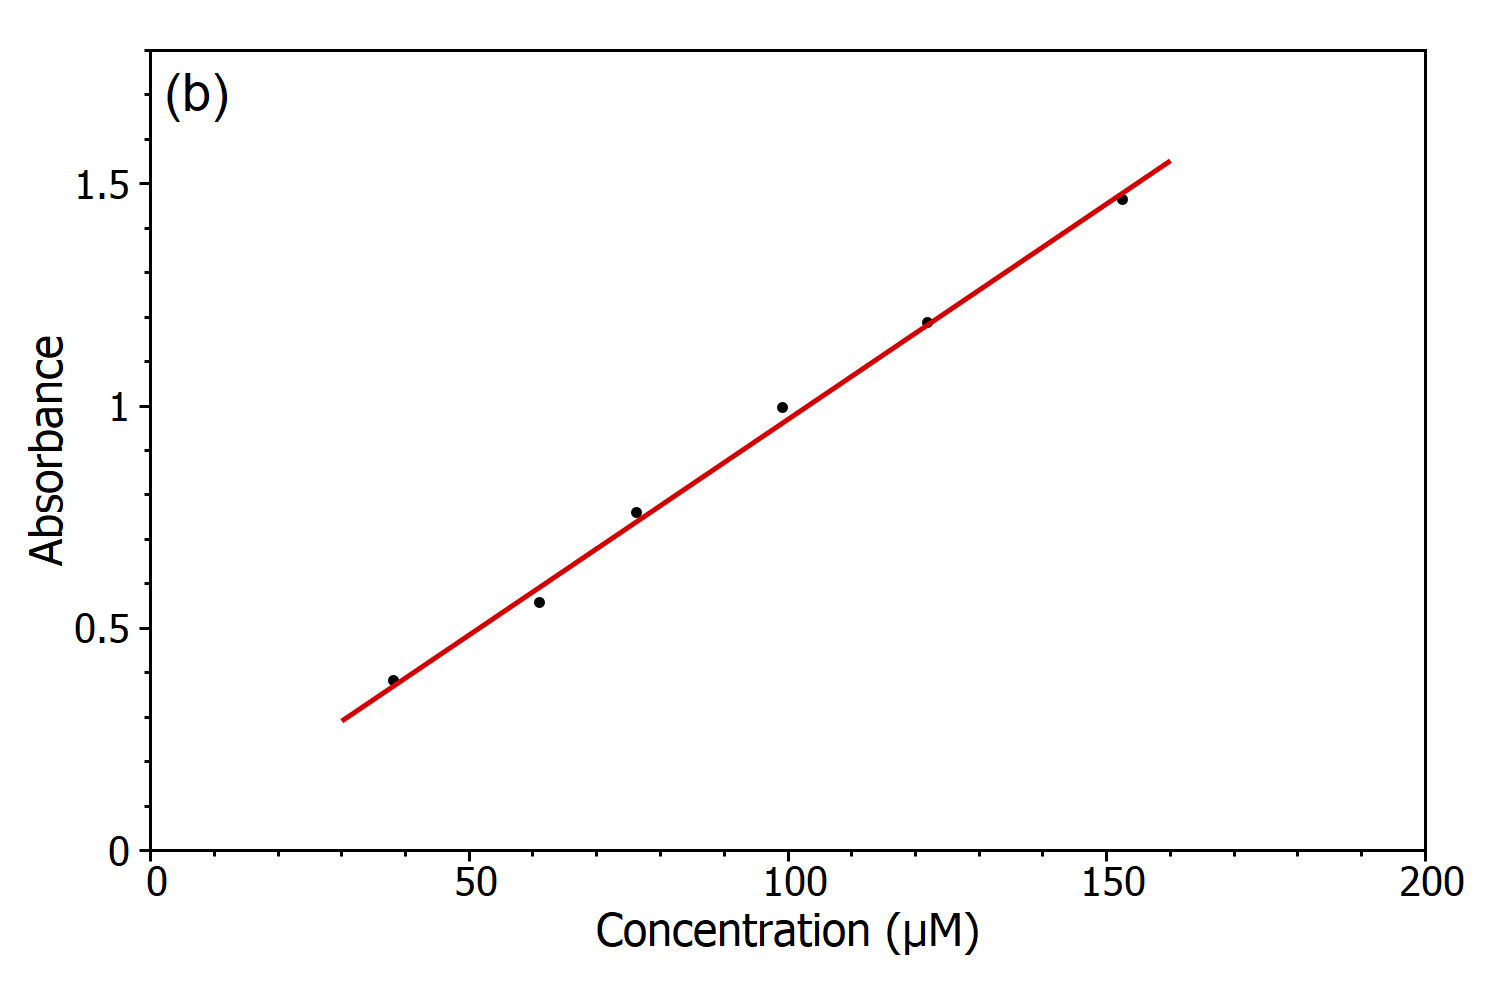 The Beer Lambert Law Concentration Curve